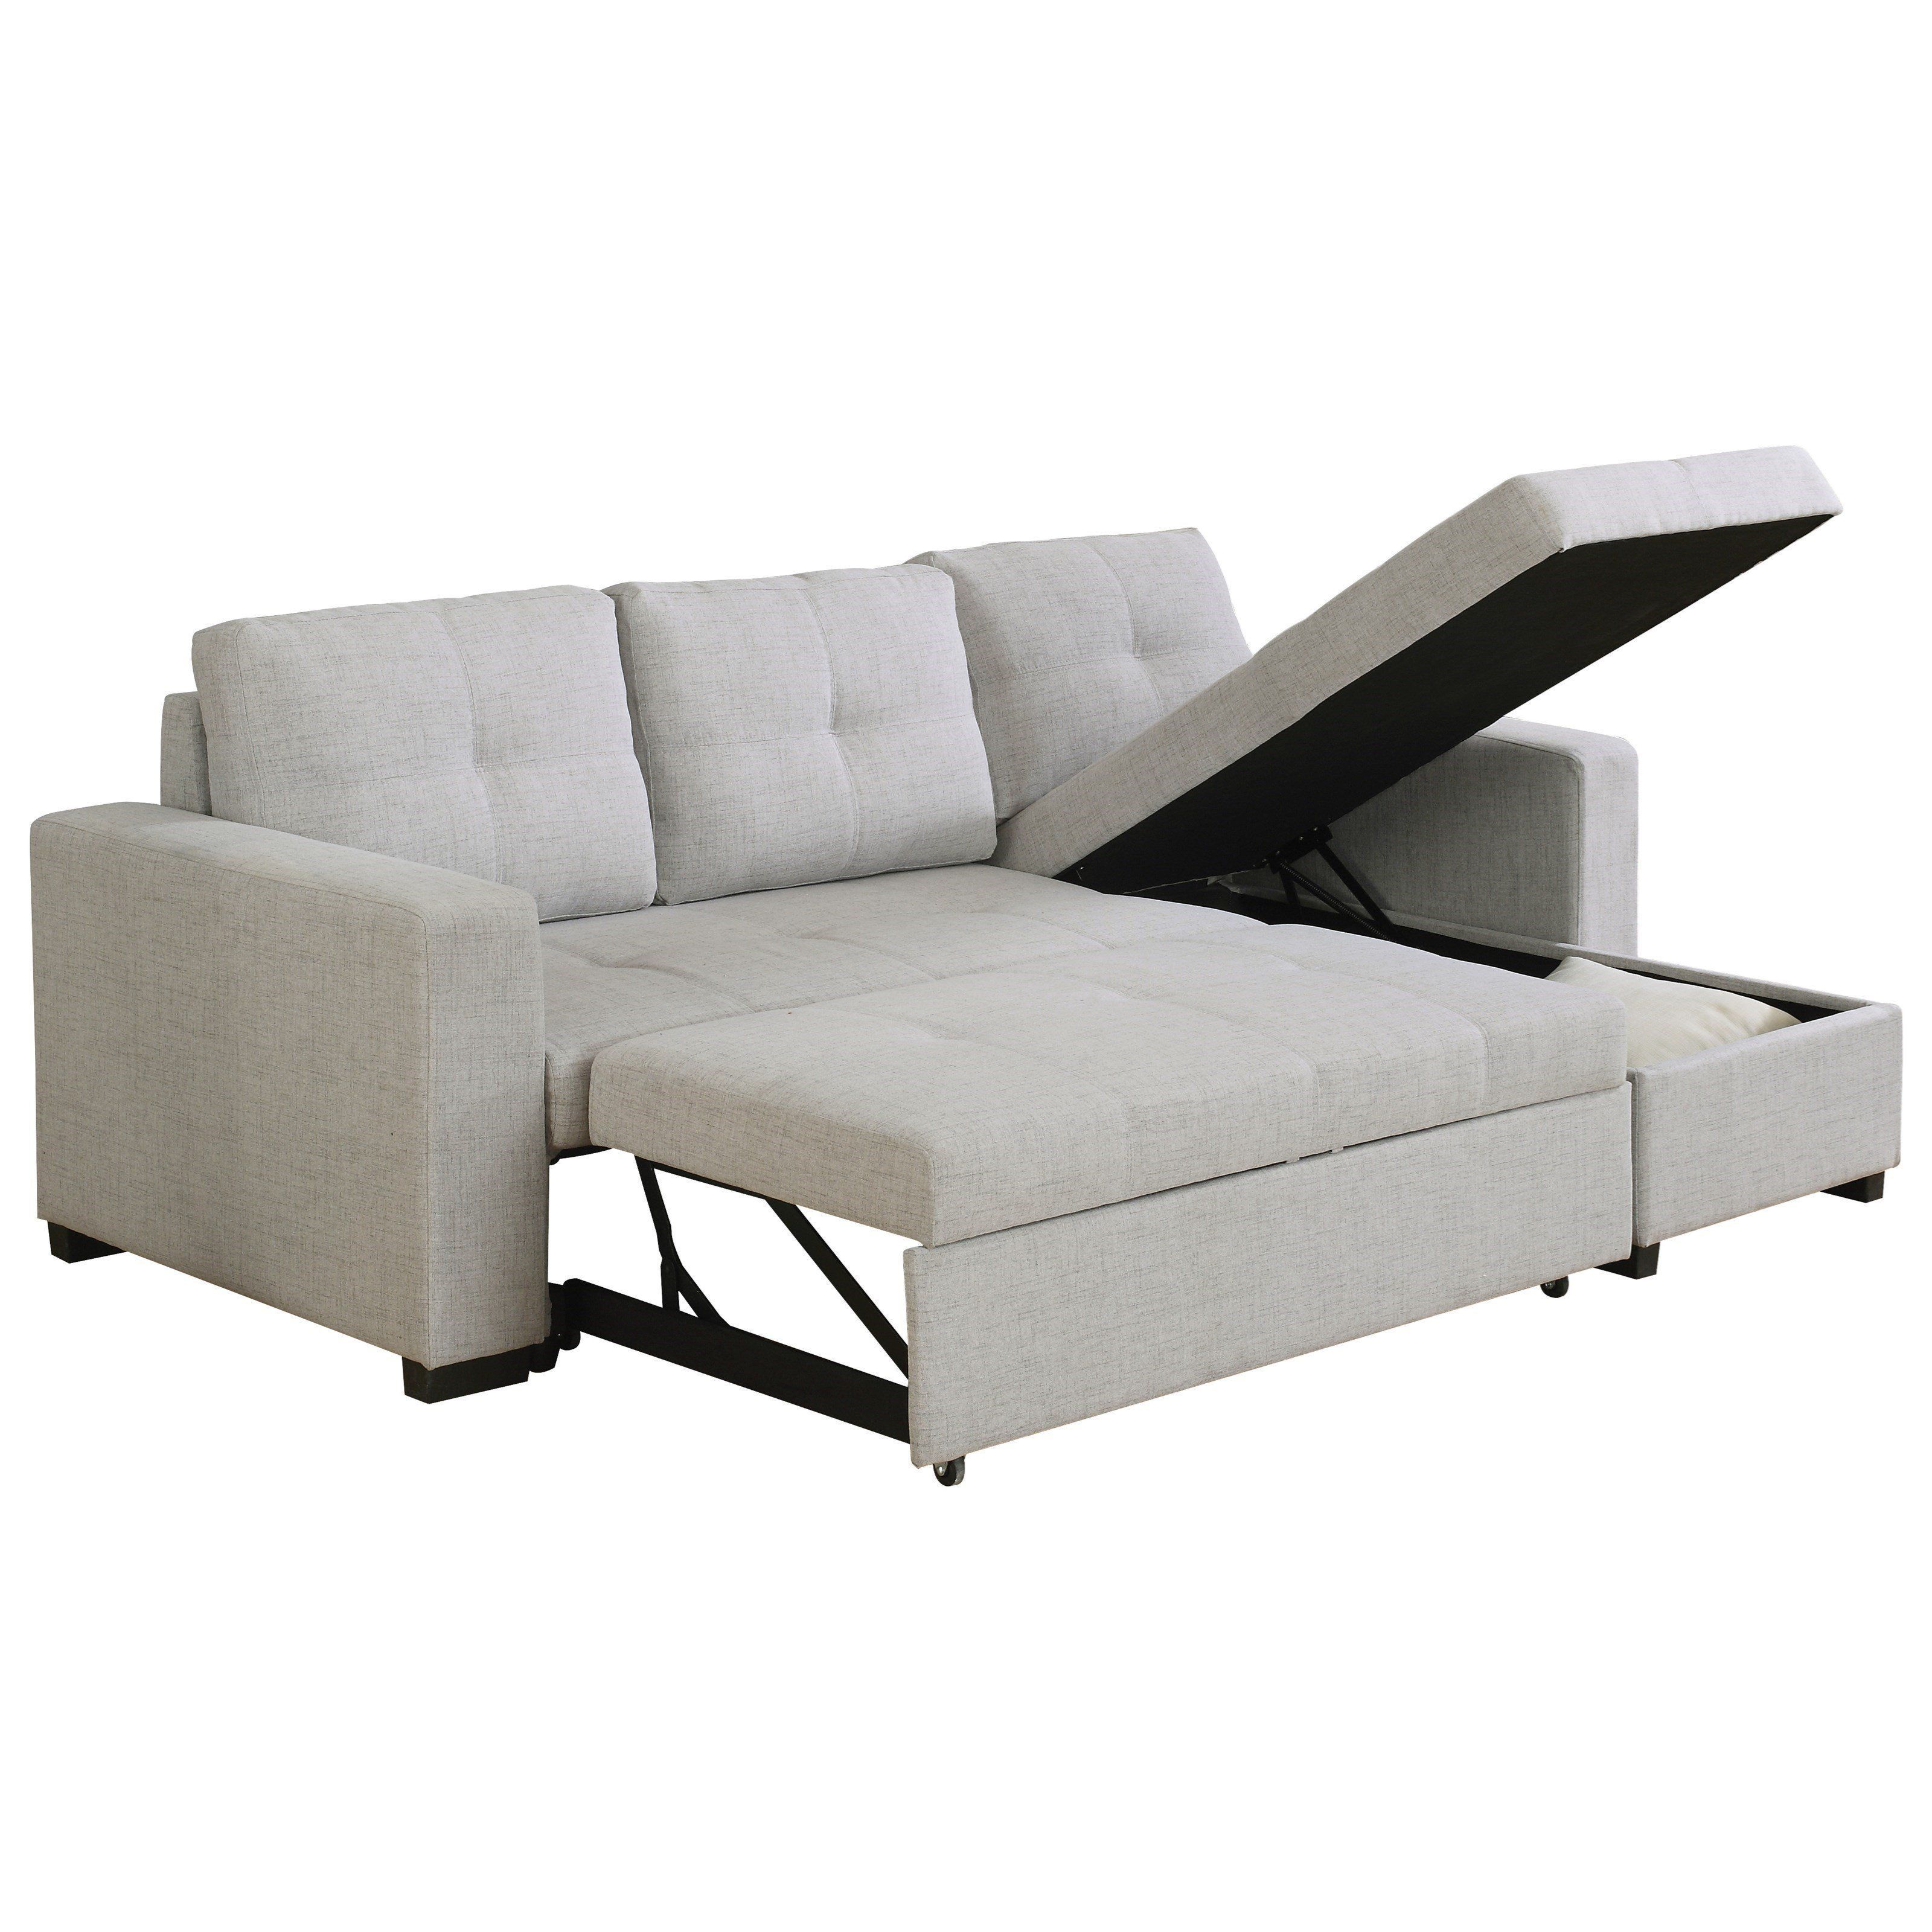 Used Sofas Online: Beige Sectional Sofa With Sleeper